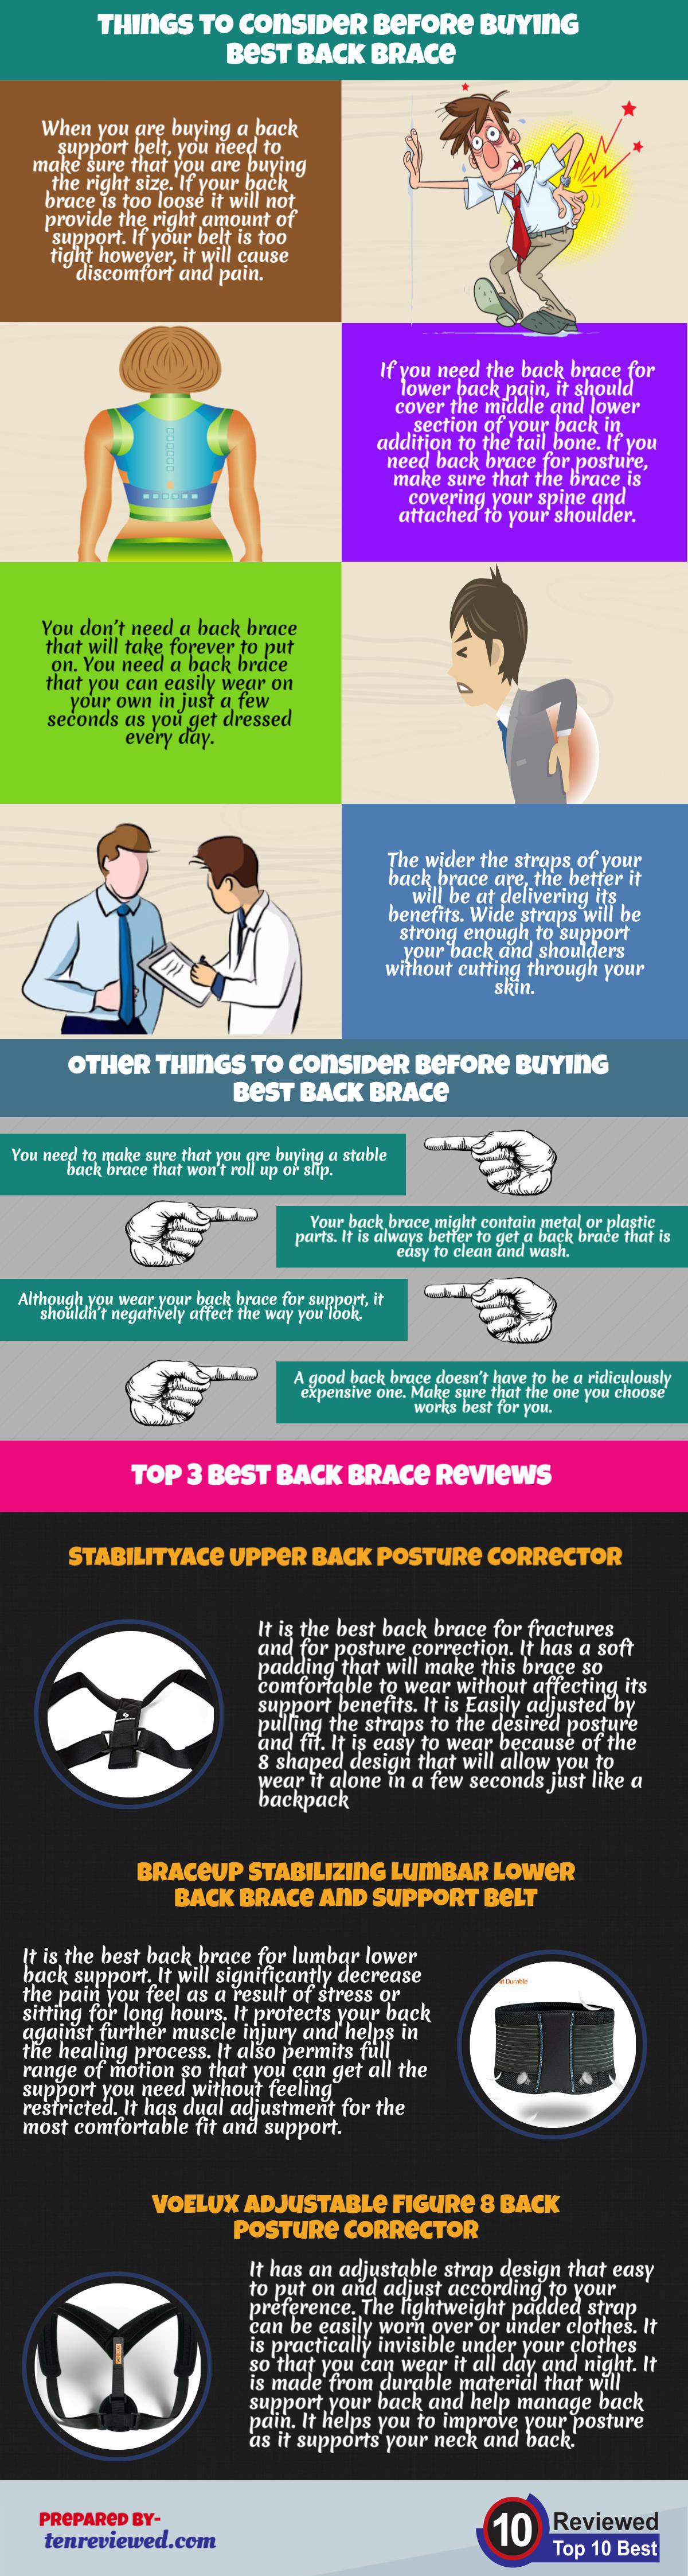 Bets back brace guide infographic